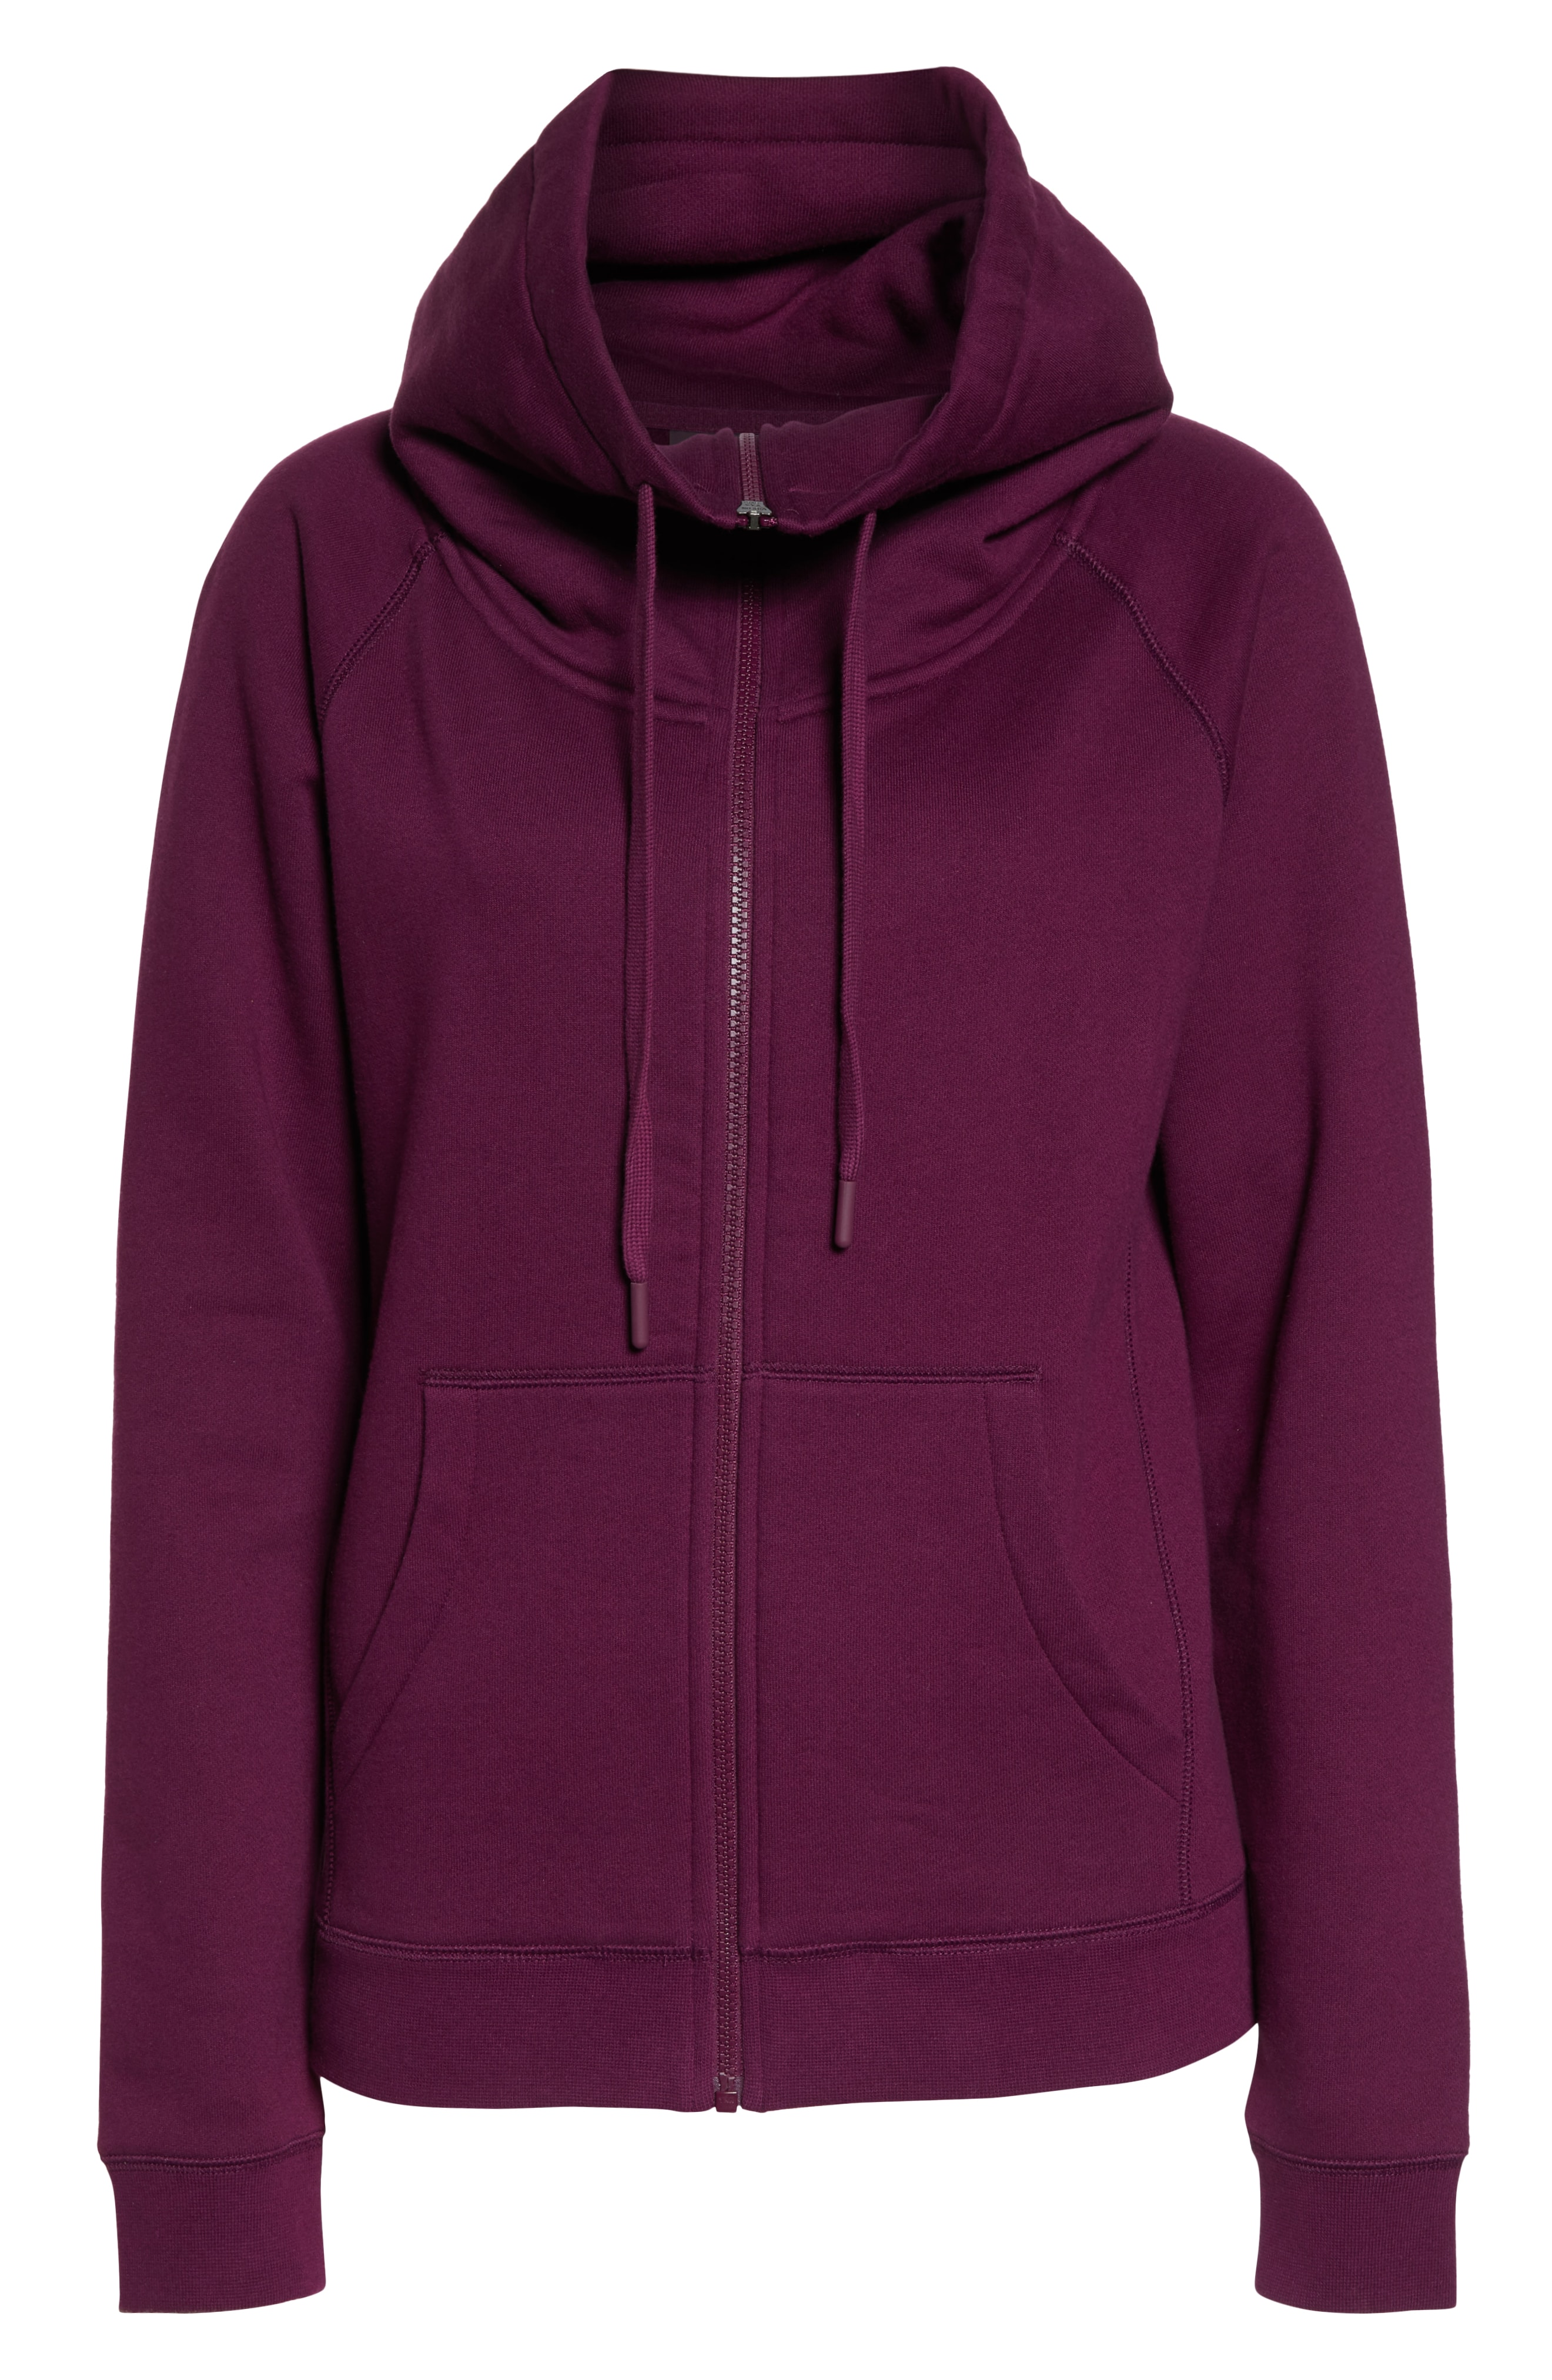 Women's Purple Sweatshirts & Hoodies | Nordstrom